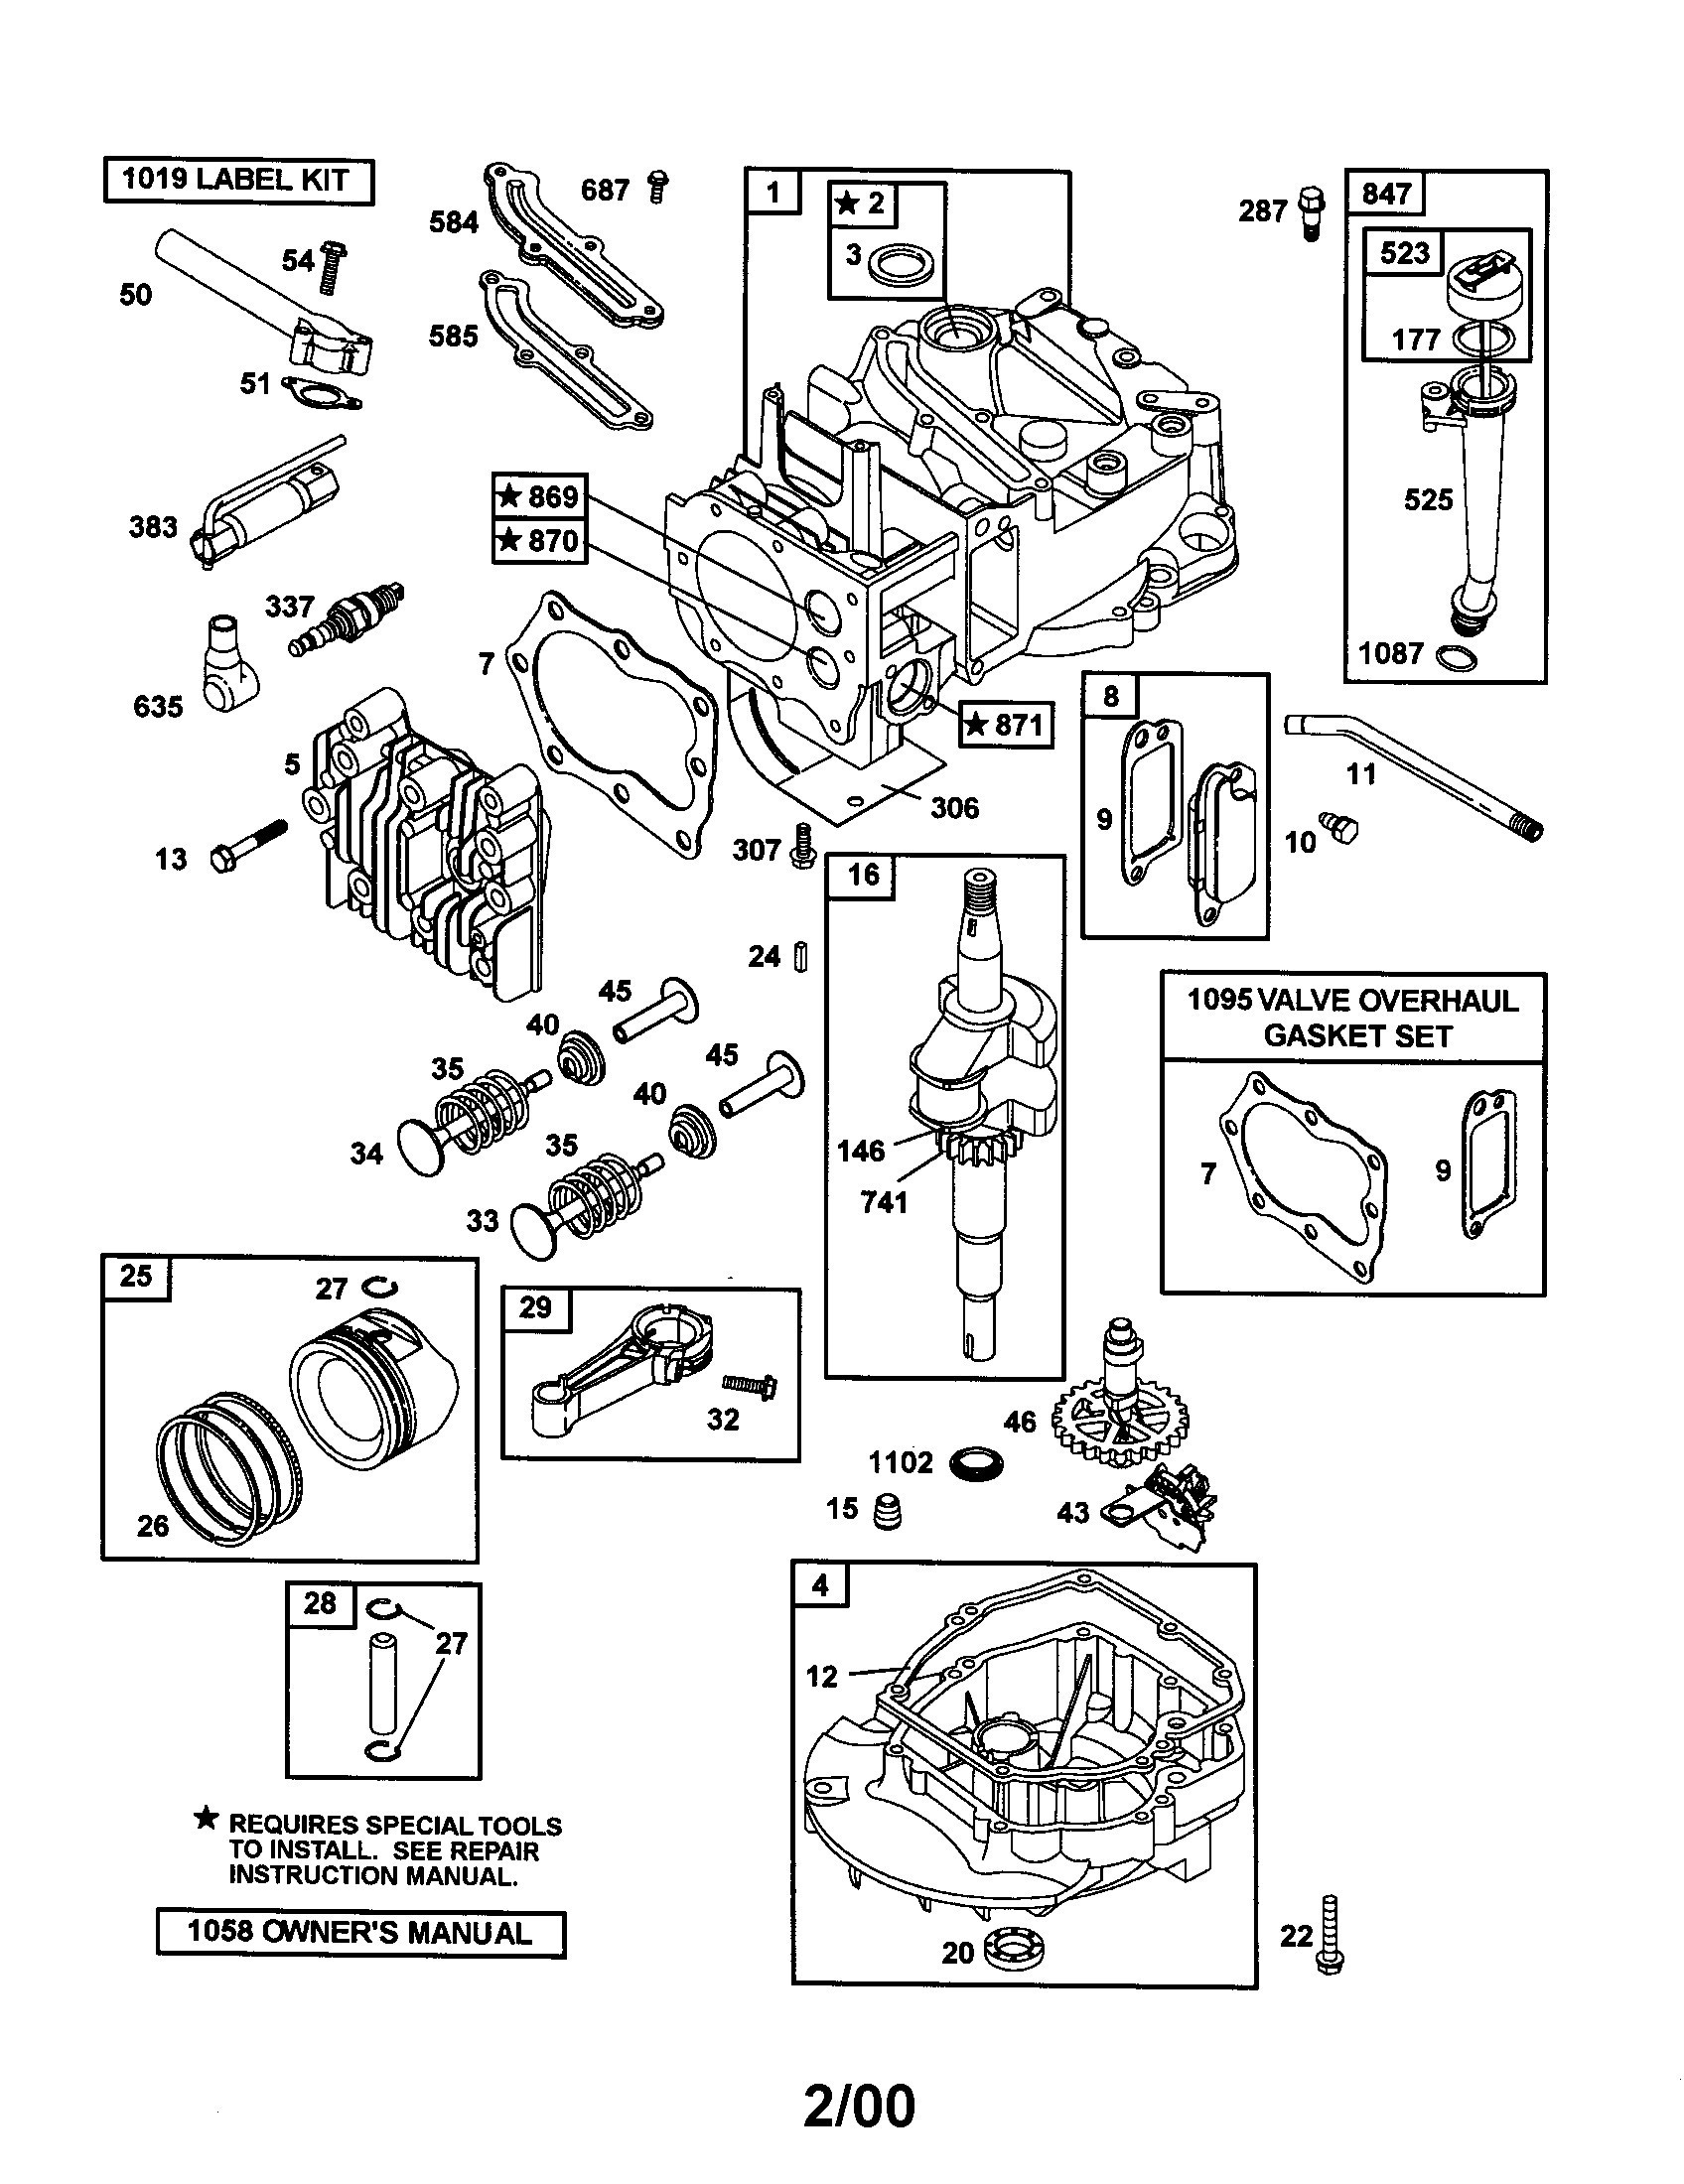 Honda Small Engine Carburetor Diagram Carb Briggs and Stratton 16 Hp Wiring Diagram Wiring Wiring Of Honda Small Engine Carburetor Diagram Craftsman Riding Mower Electrical Diagram